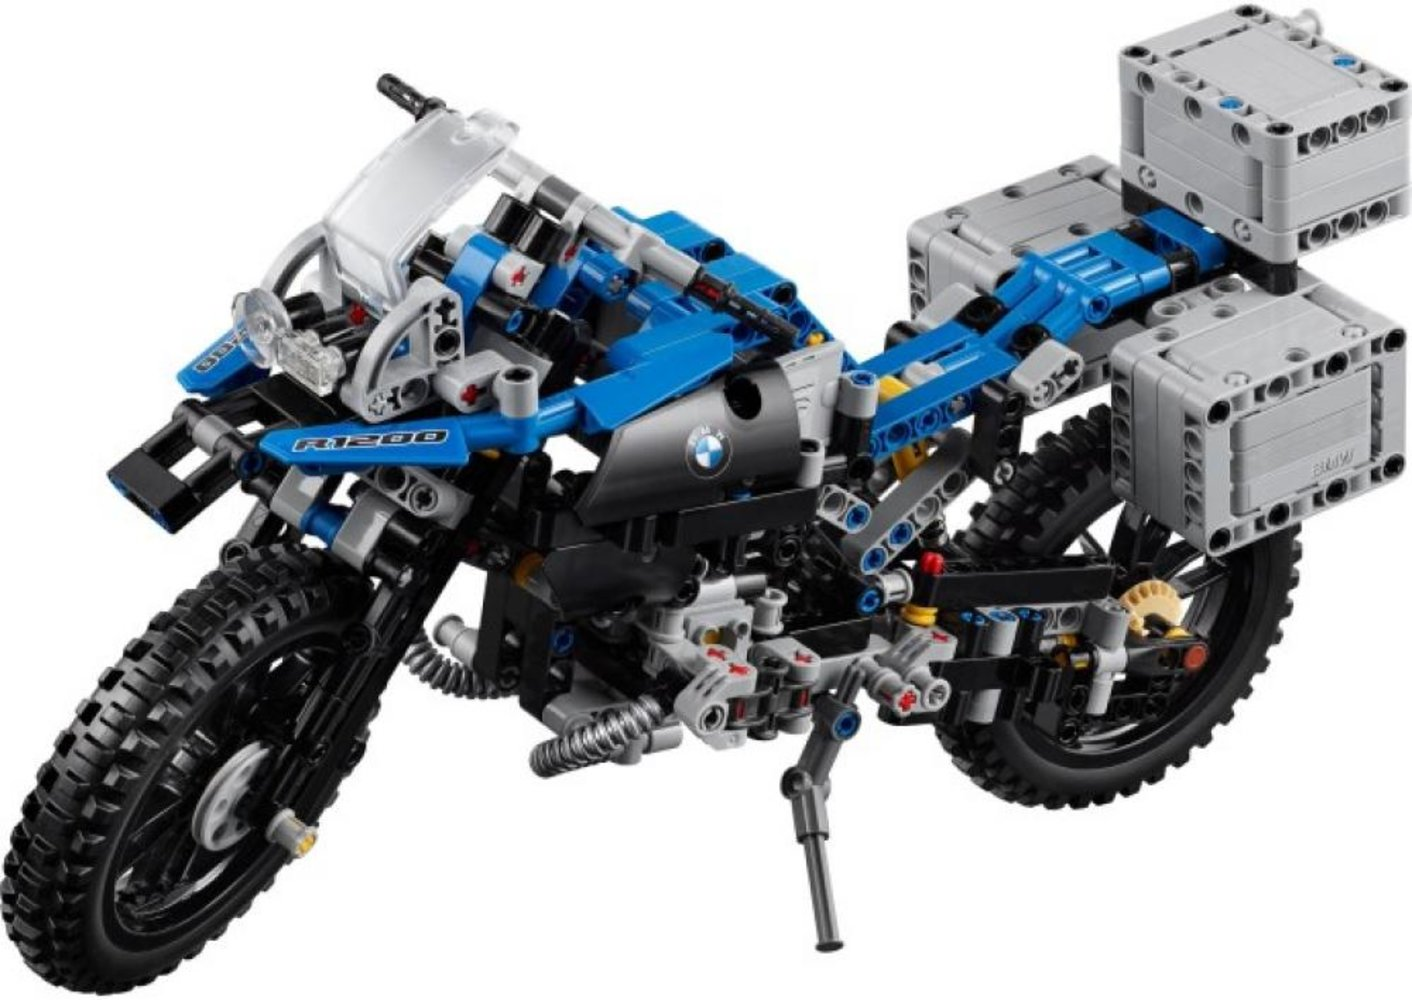 Technic 40 year anniversary model (42057 + 42061 + 42063)